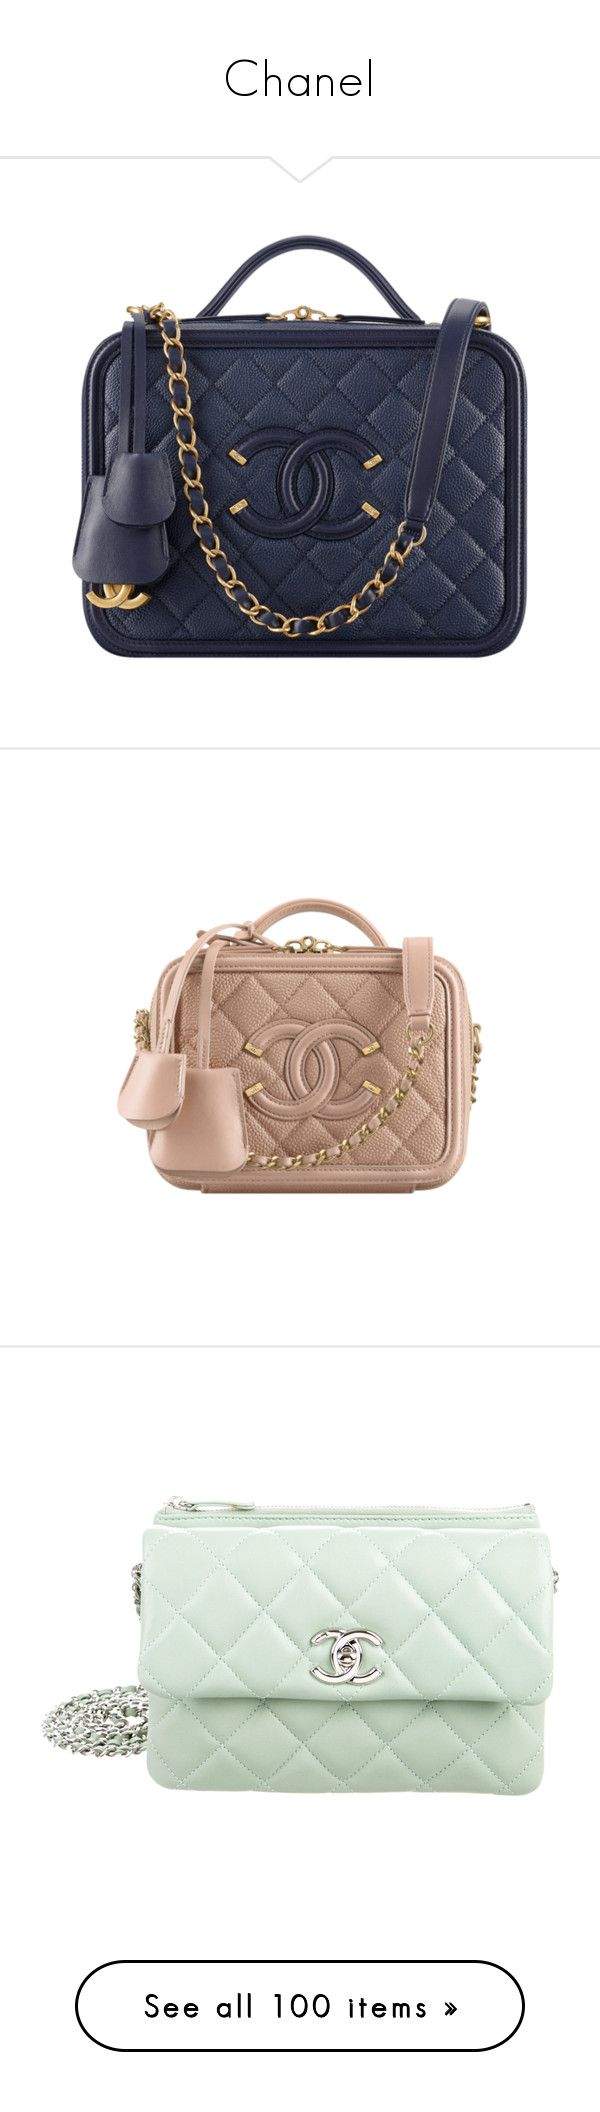 """Chanel"" by backupoffmee ❤ liked on Polyvore featuring chanel, bags, handbags, shoulder bags, chanel shoulder bag, leather shoulder bag, chanel purse, leather handbags, leather purses and purses"